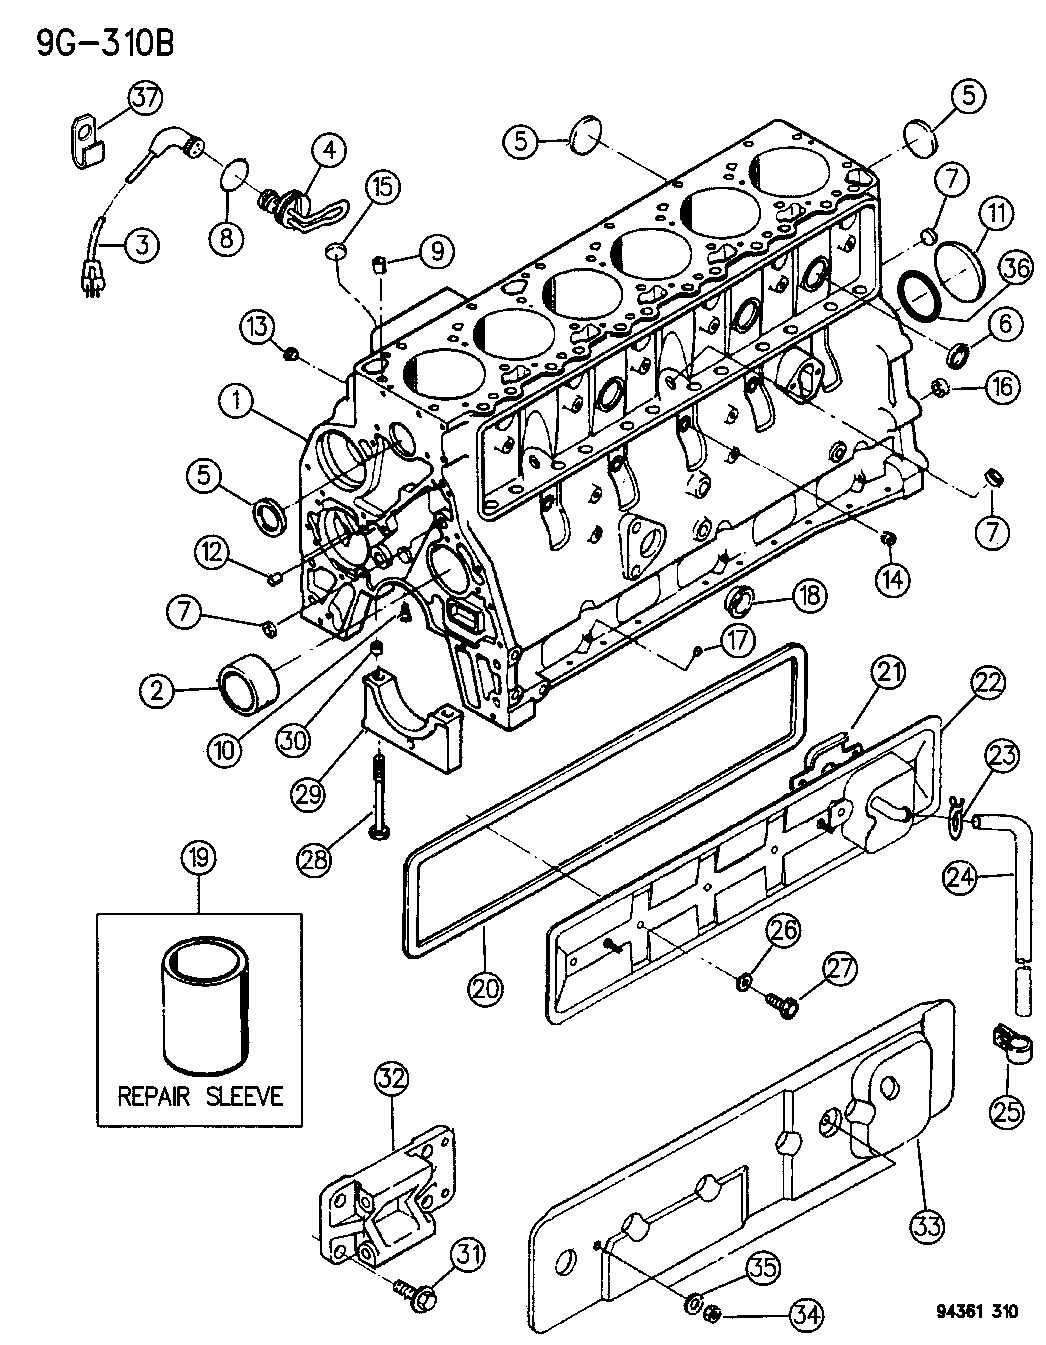 S10 4 Cylinder Engine Diagram